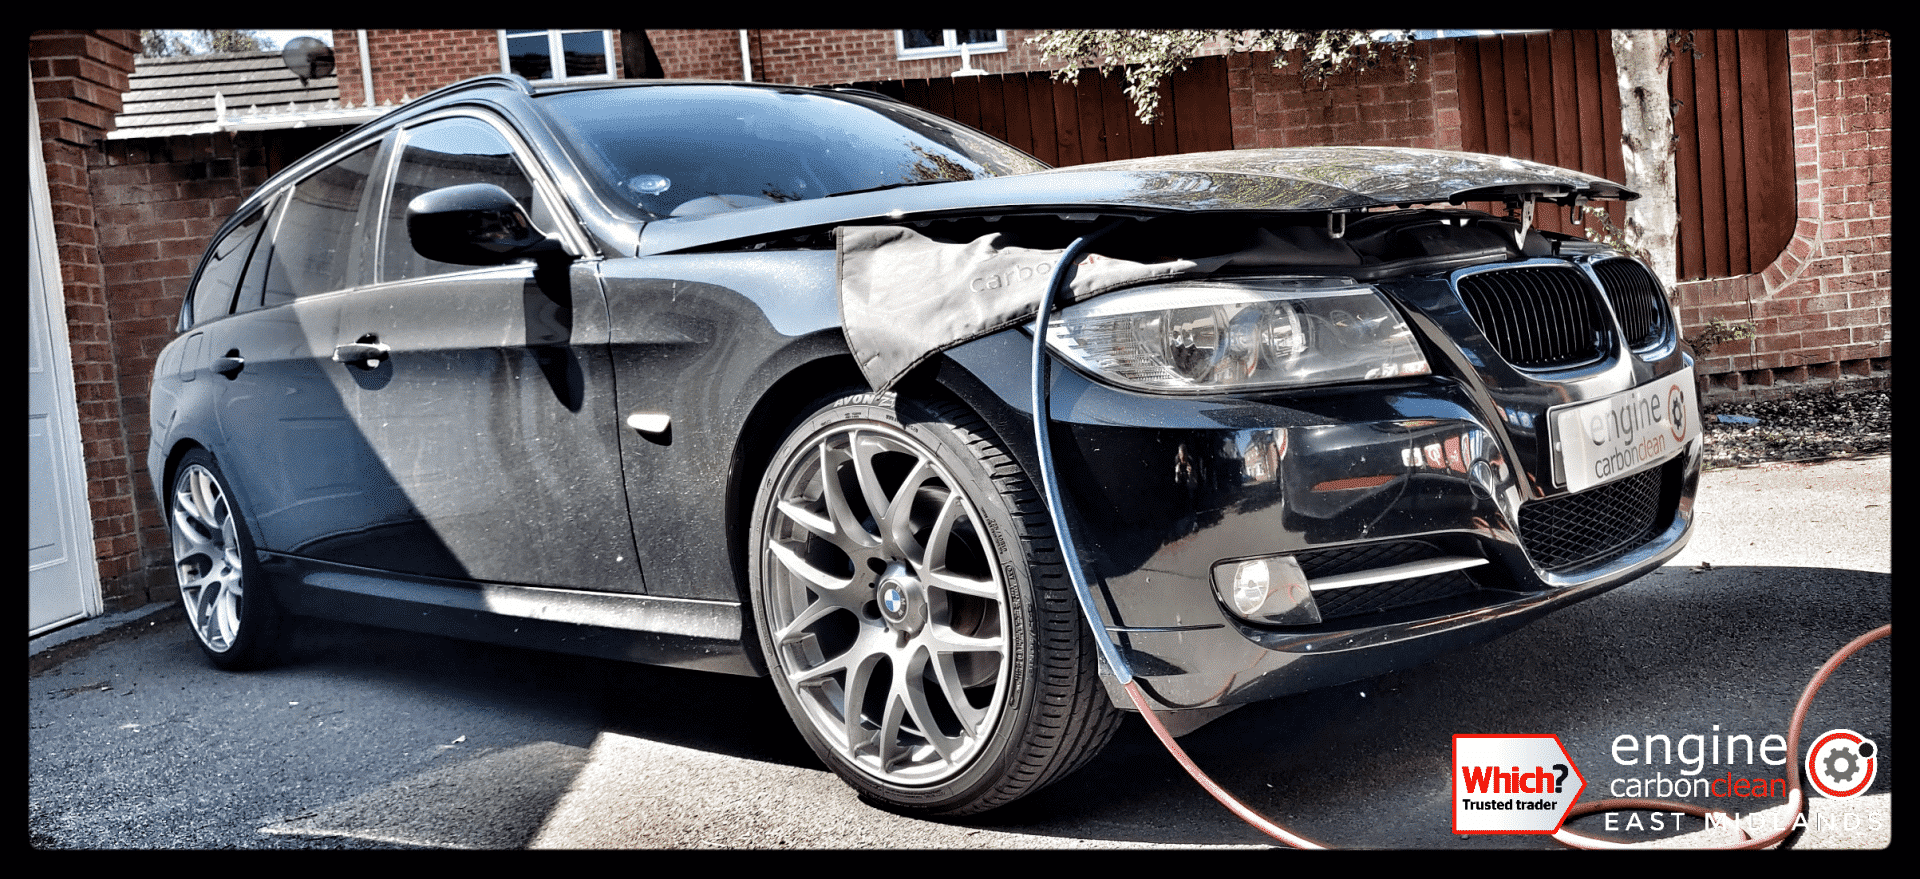 Diagnostic Consultation and Engine Carbon Clean on a BMW 318d (2011 - 108,801 miles)